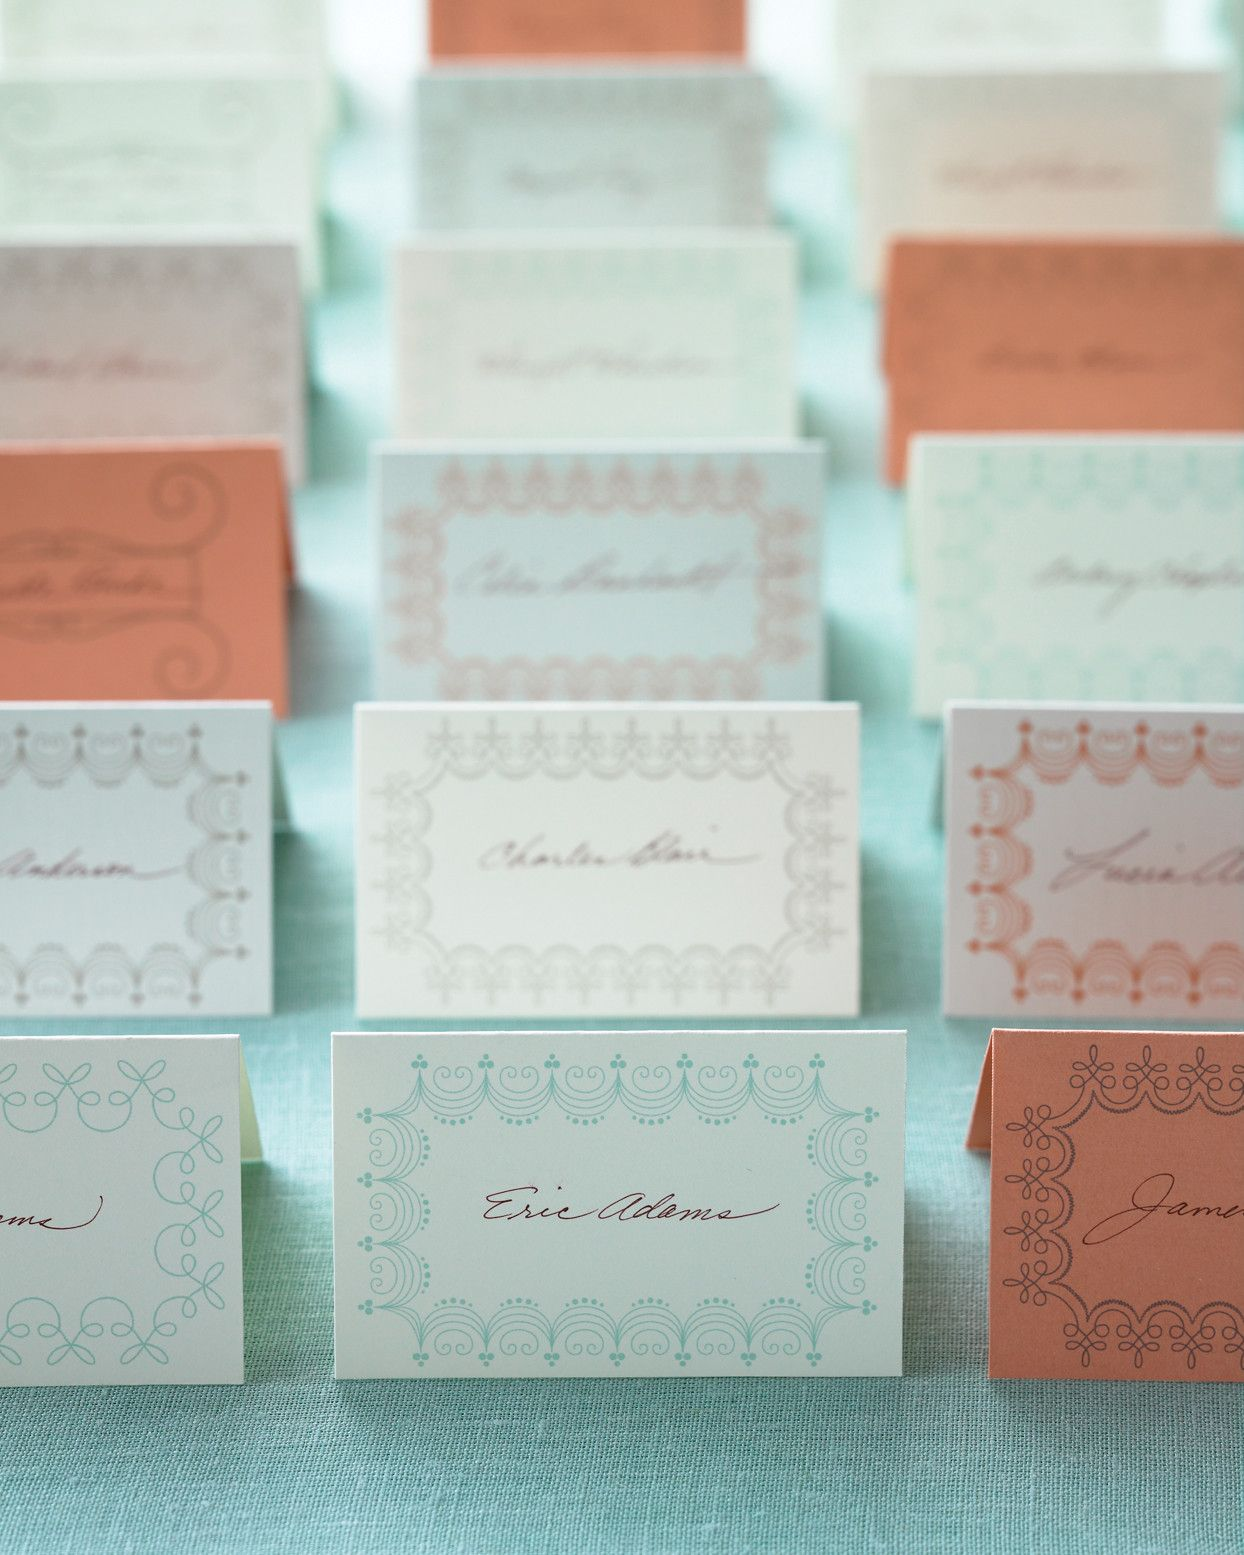 Print These Charming Designs Onto Preperforated Card Stock To Make Sophisticated Party Place Cards Black Designsprint Gray Color